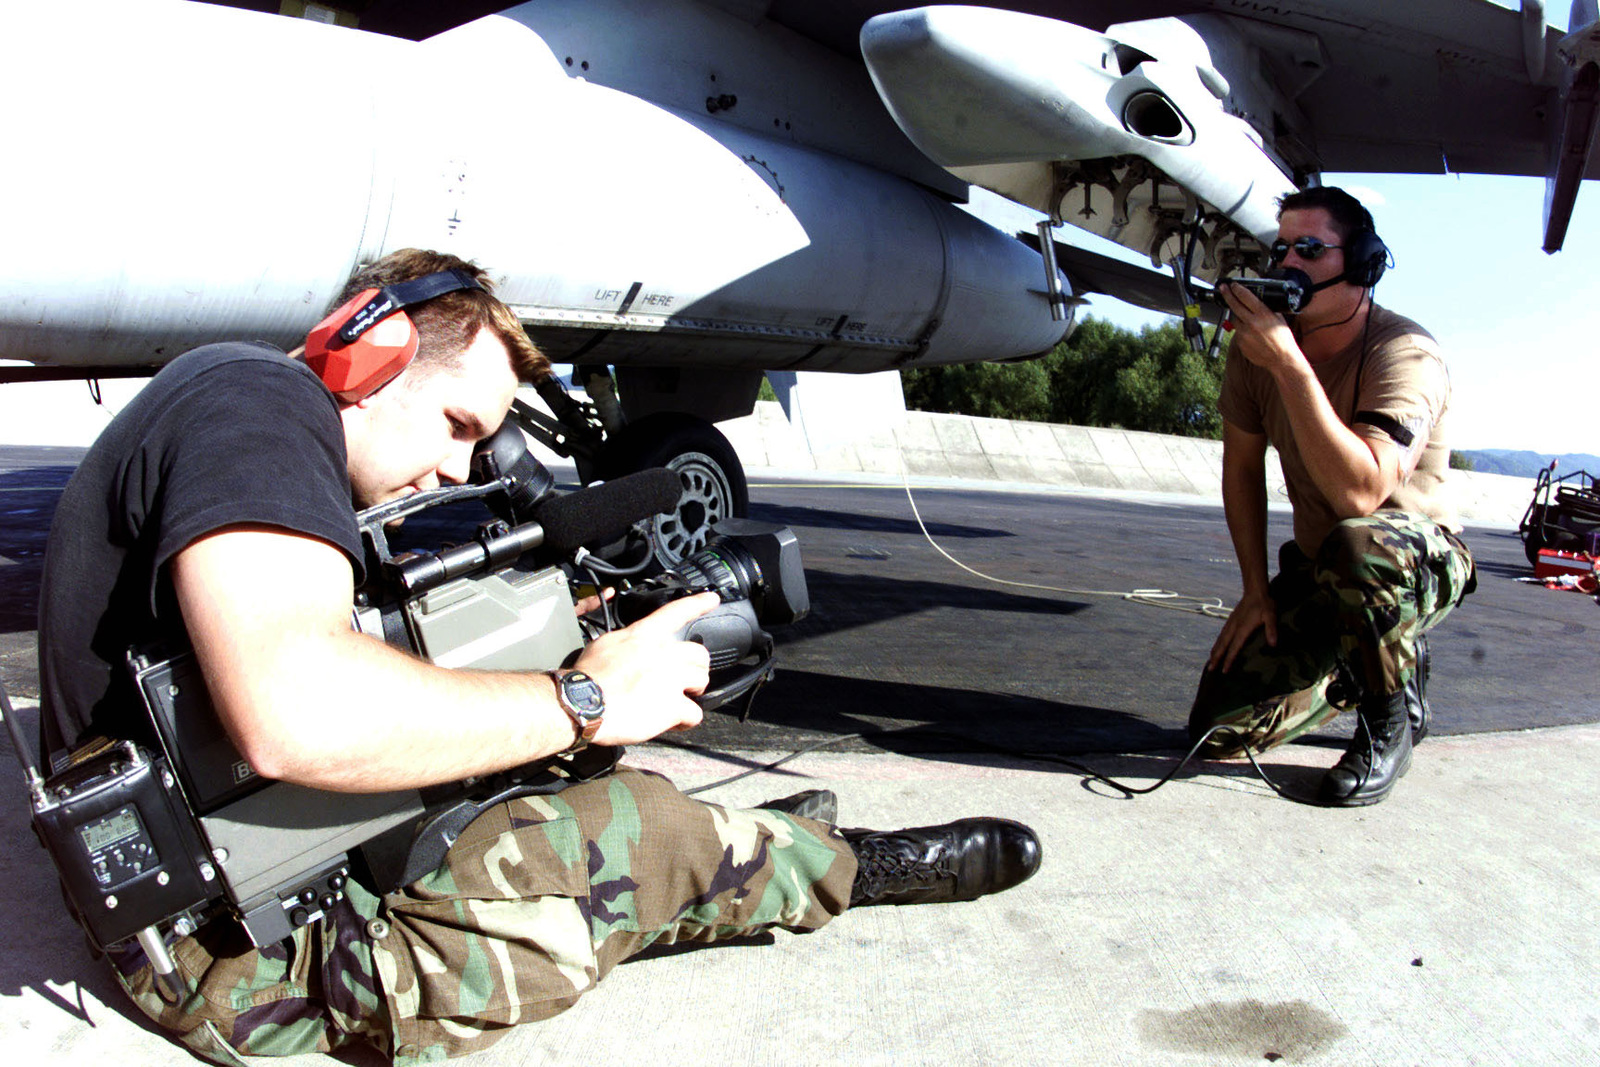 United States Air Force SENIOR AIRMAN Noah Park, a radio and television broadcaster, Det 8, Aviano Air Base, Italy, documents SRA Ed Neely, USAF, Armament Systems journeyman, 510th Fighter Squadron, 31st Fighter Wing, deployed from Aviano AB, performing an operational check of a SUU-22 (Suspended Underwing Unit) weapons pylon at Kuchyna AB, Slovakia. Training Exercise Iron Claw, 12 September 2000